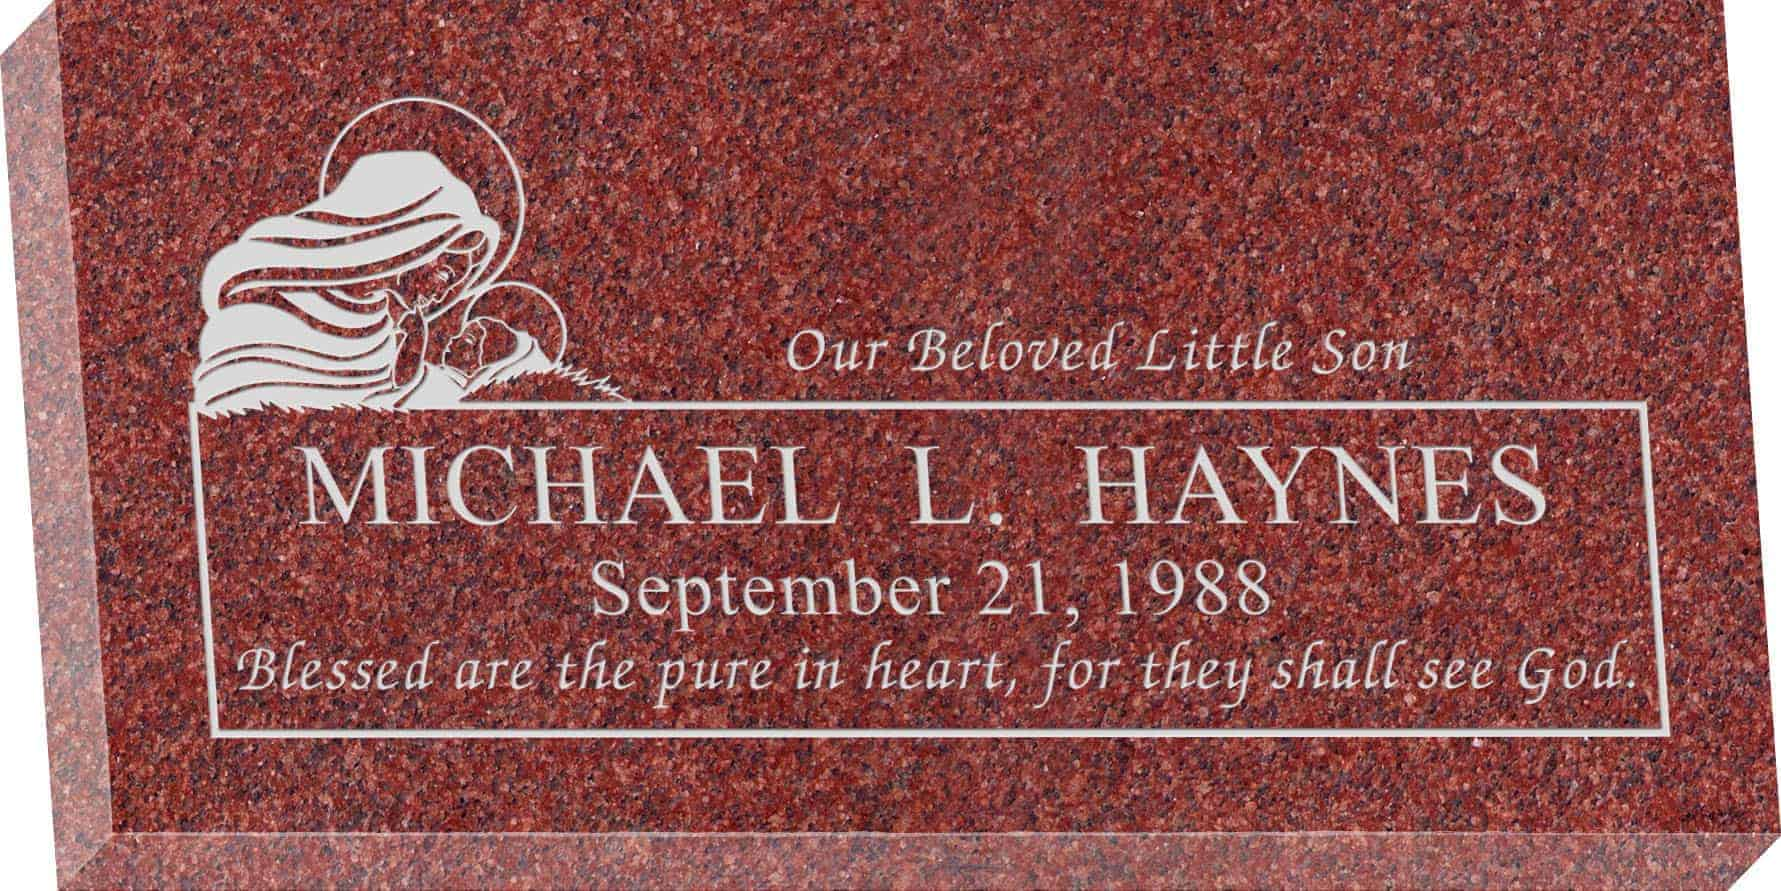 24inch_x_12inch_x_3inch_Flat_Granite_Headstone_in_Imperial_Red_with_design_B-18